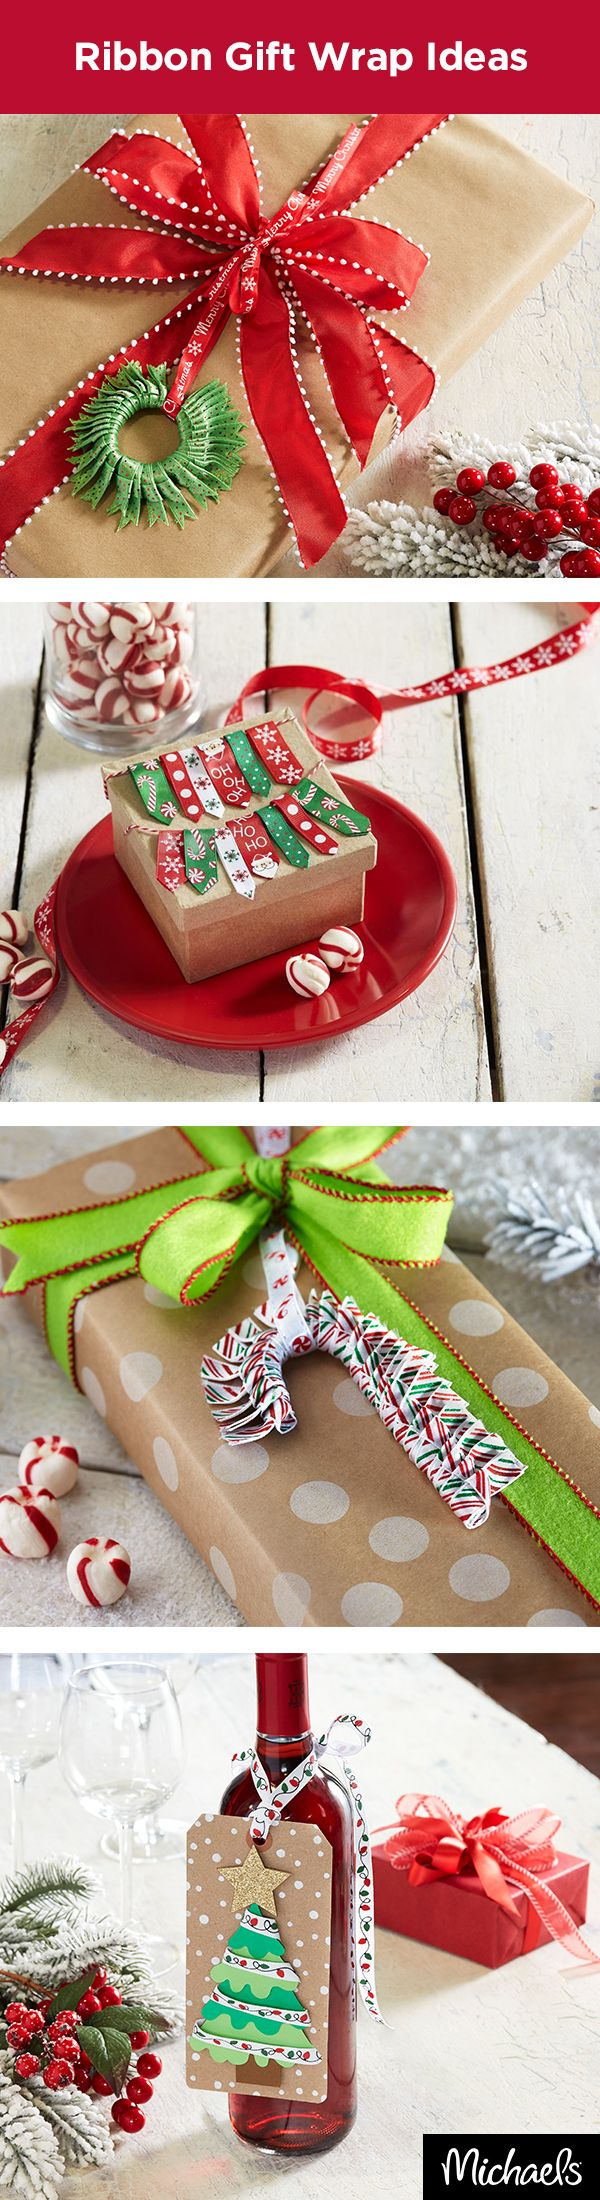 best gift wrapping ideas images on pinterest wrapping gifts